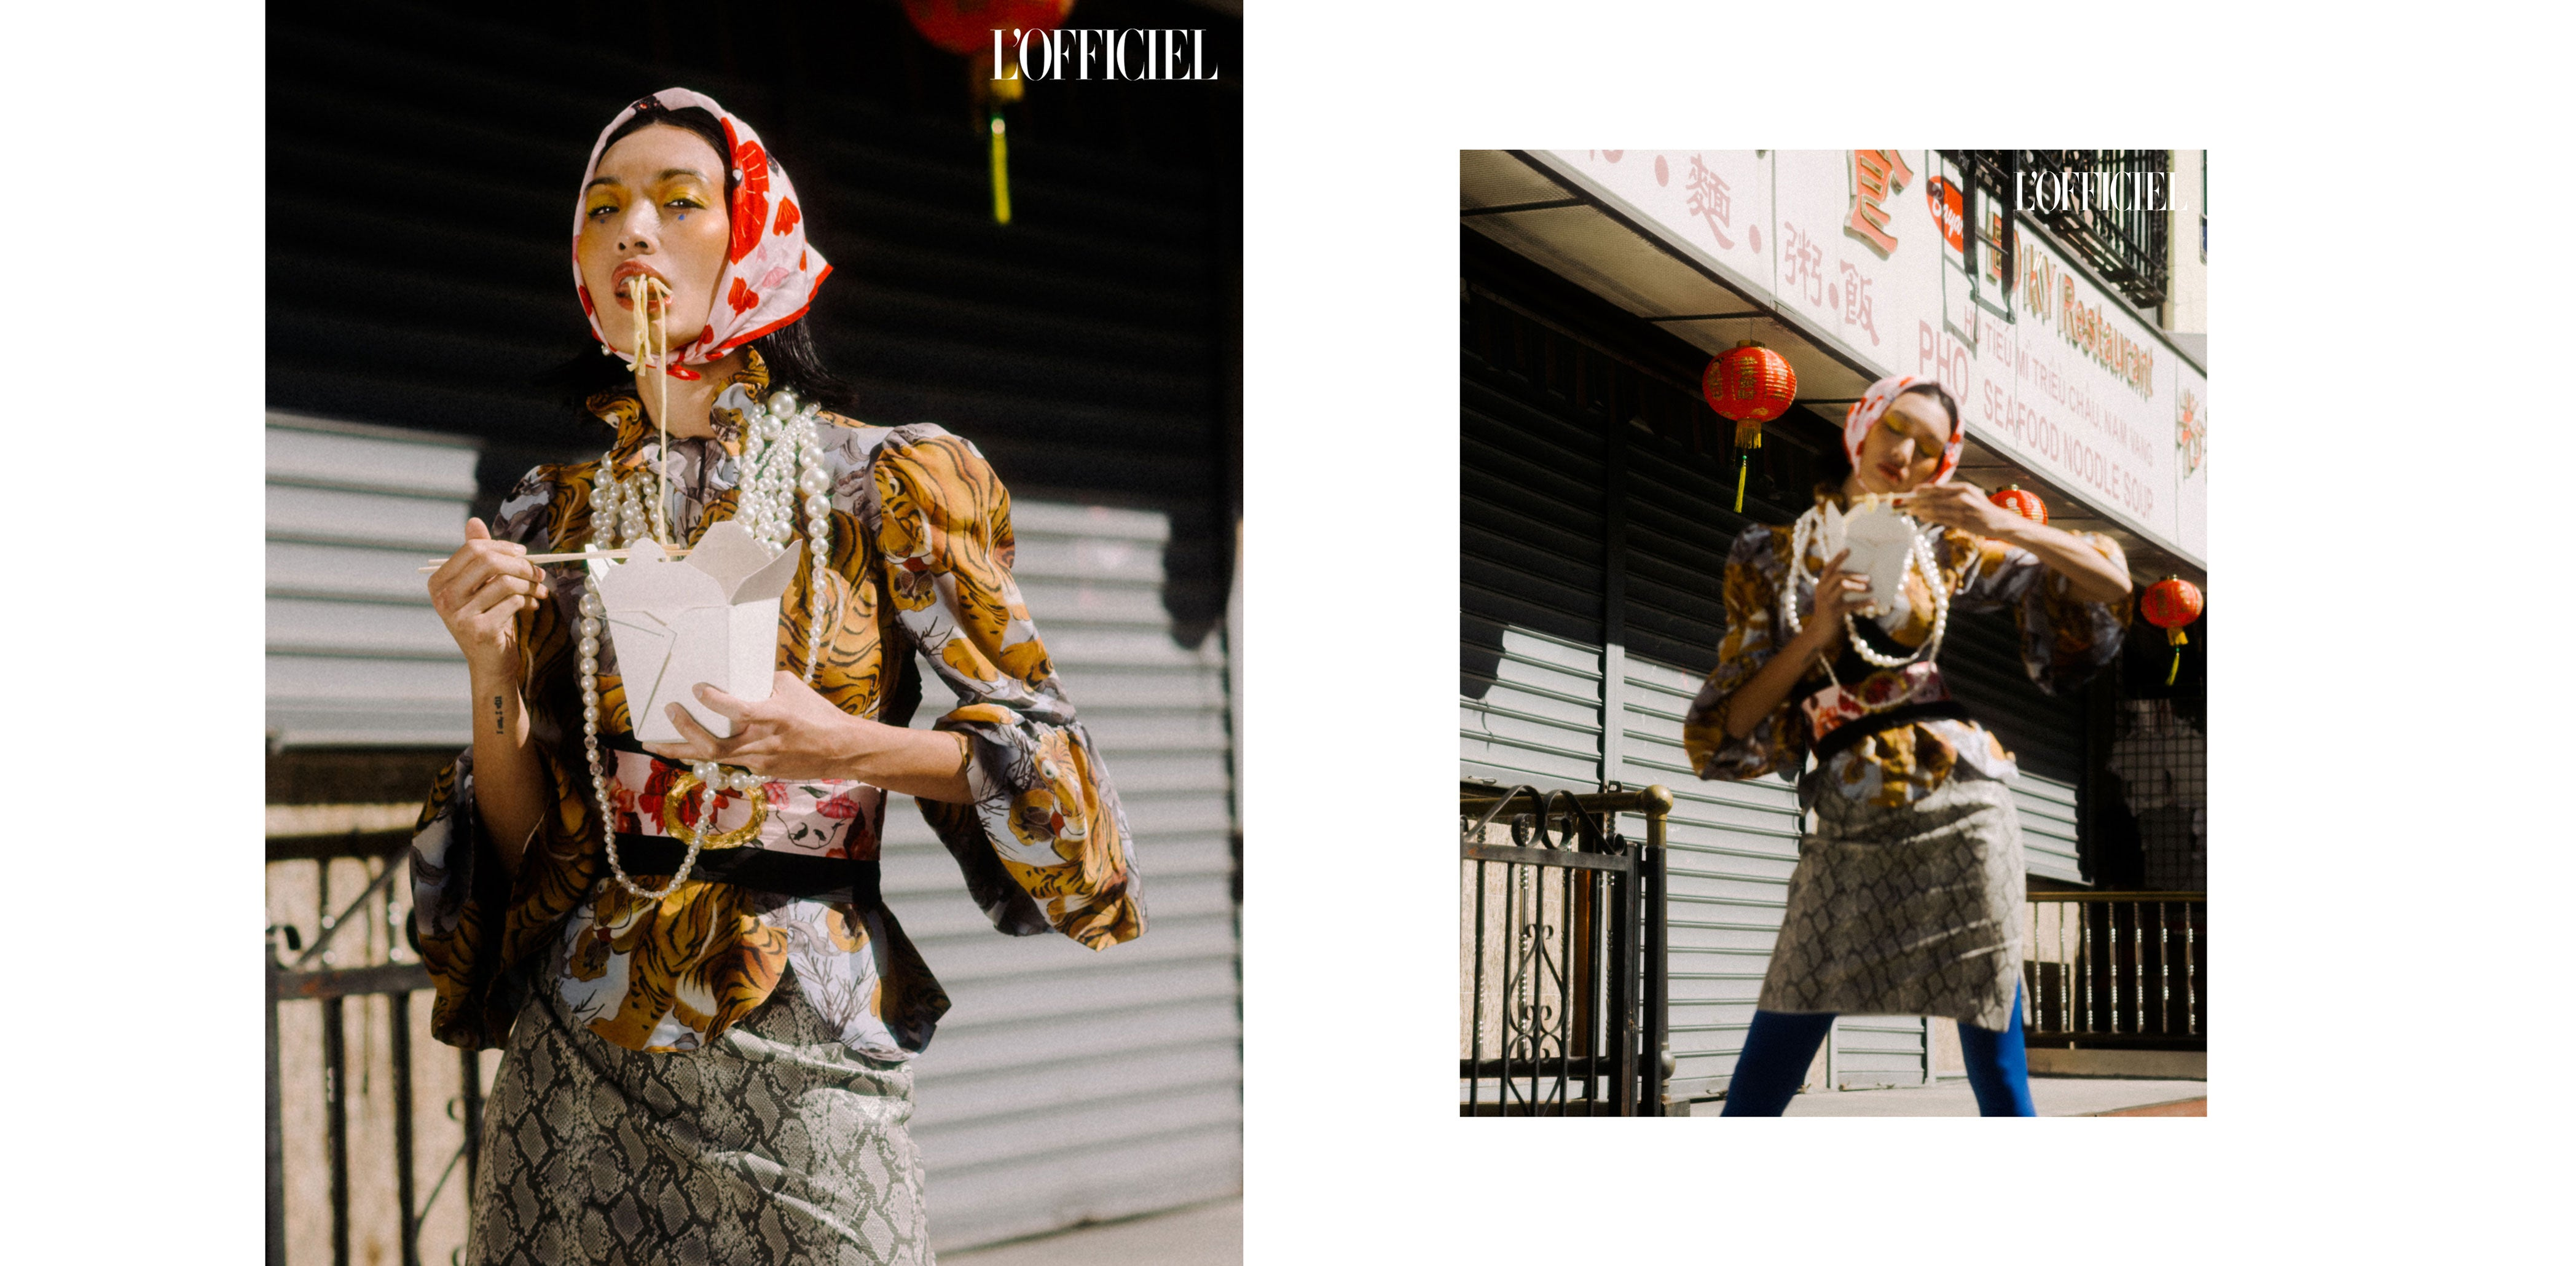 centinelle bandana at L'Officiel fashion editorial chinatown